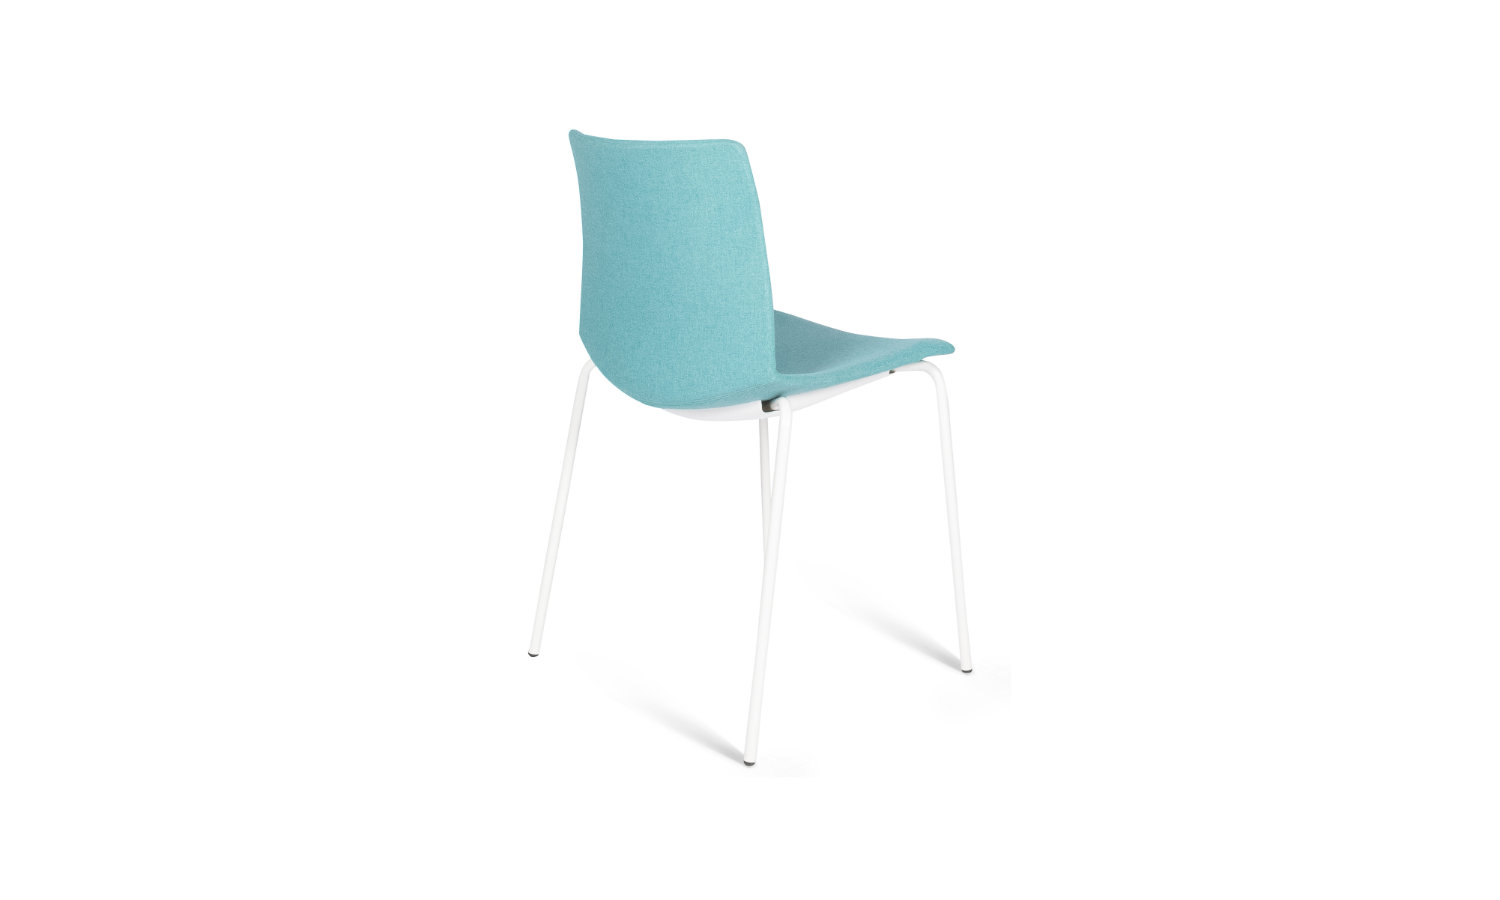 visitor chair with white legs